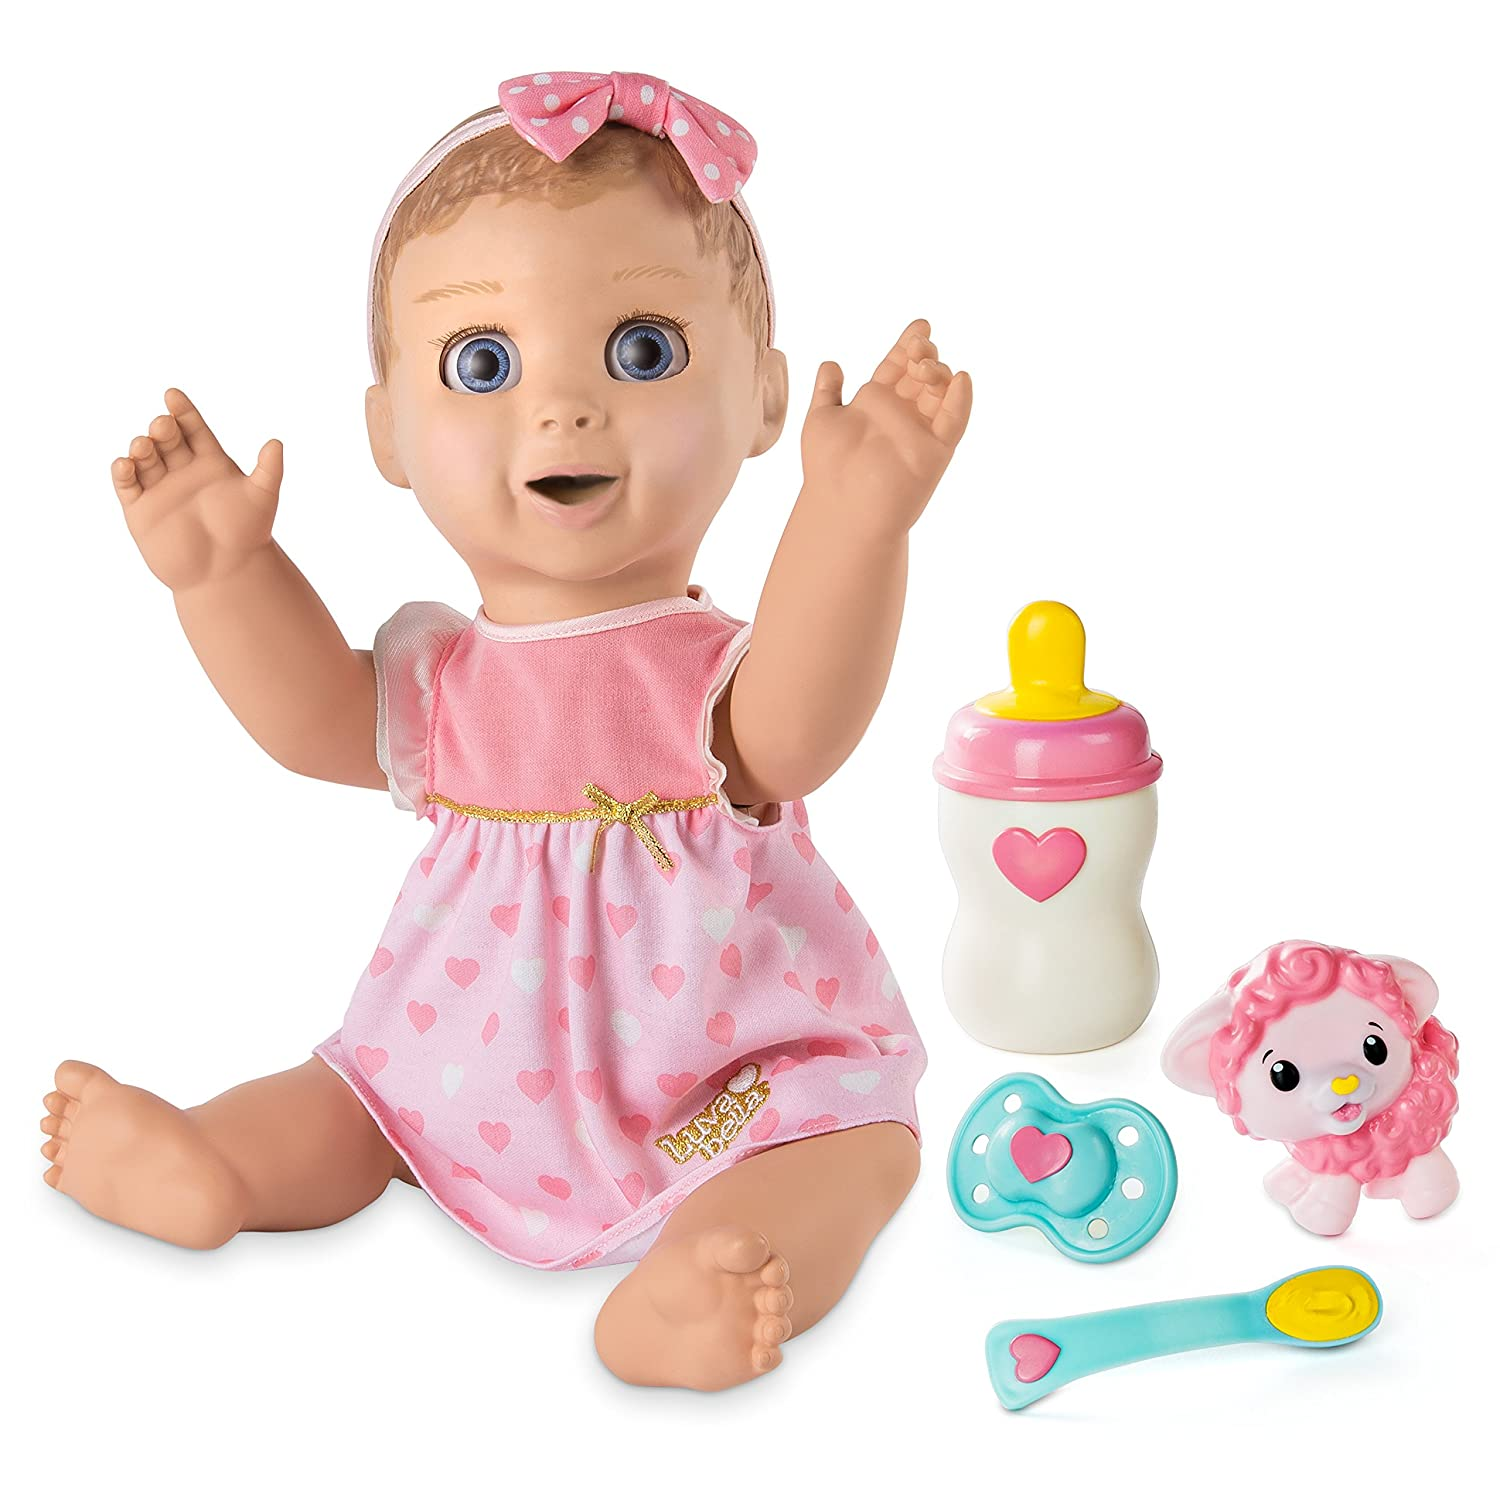 Luvabella Blonde Hair, Responsive Baby Doll with Real Expressions and Movement, for Ages 4 and Up Spin Master 6028851